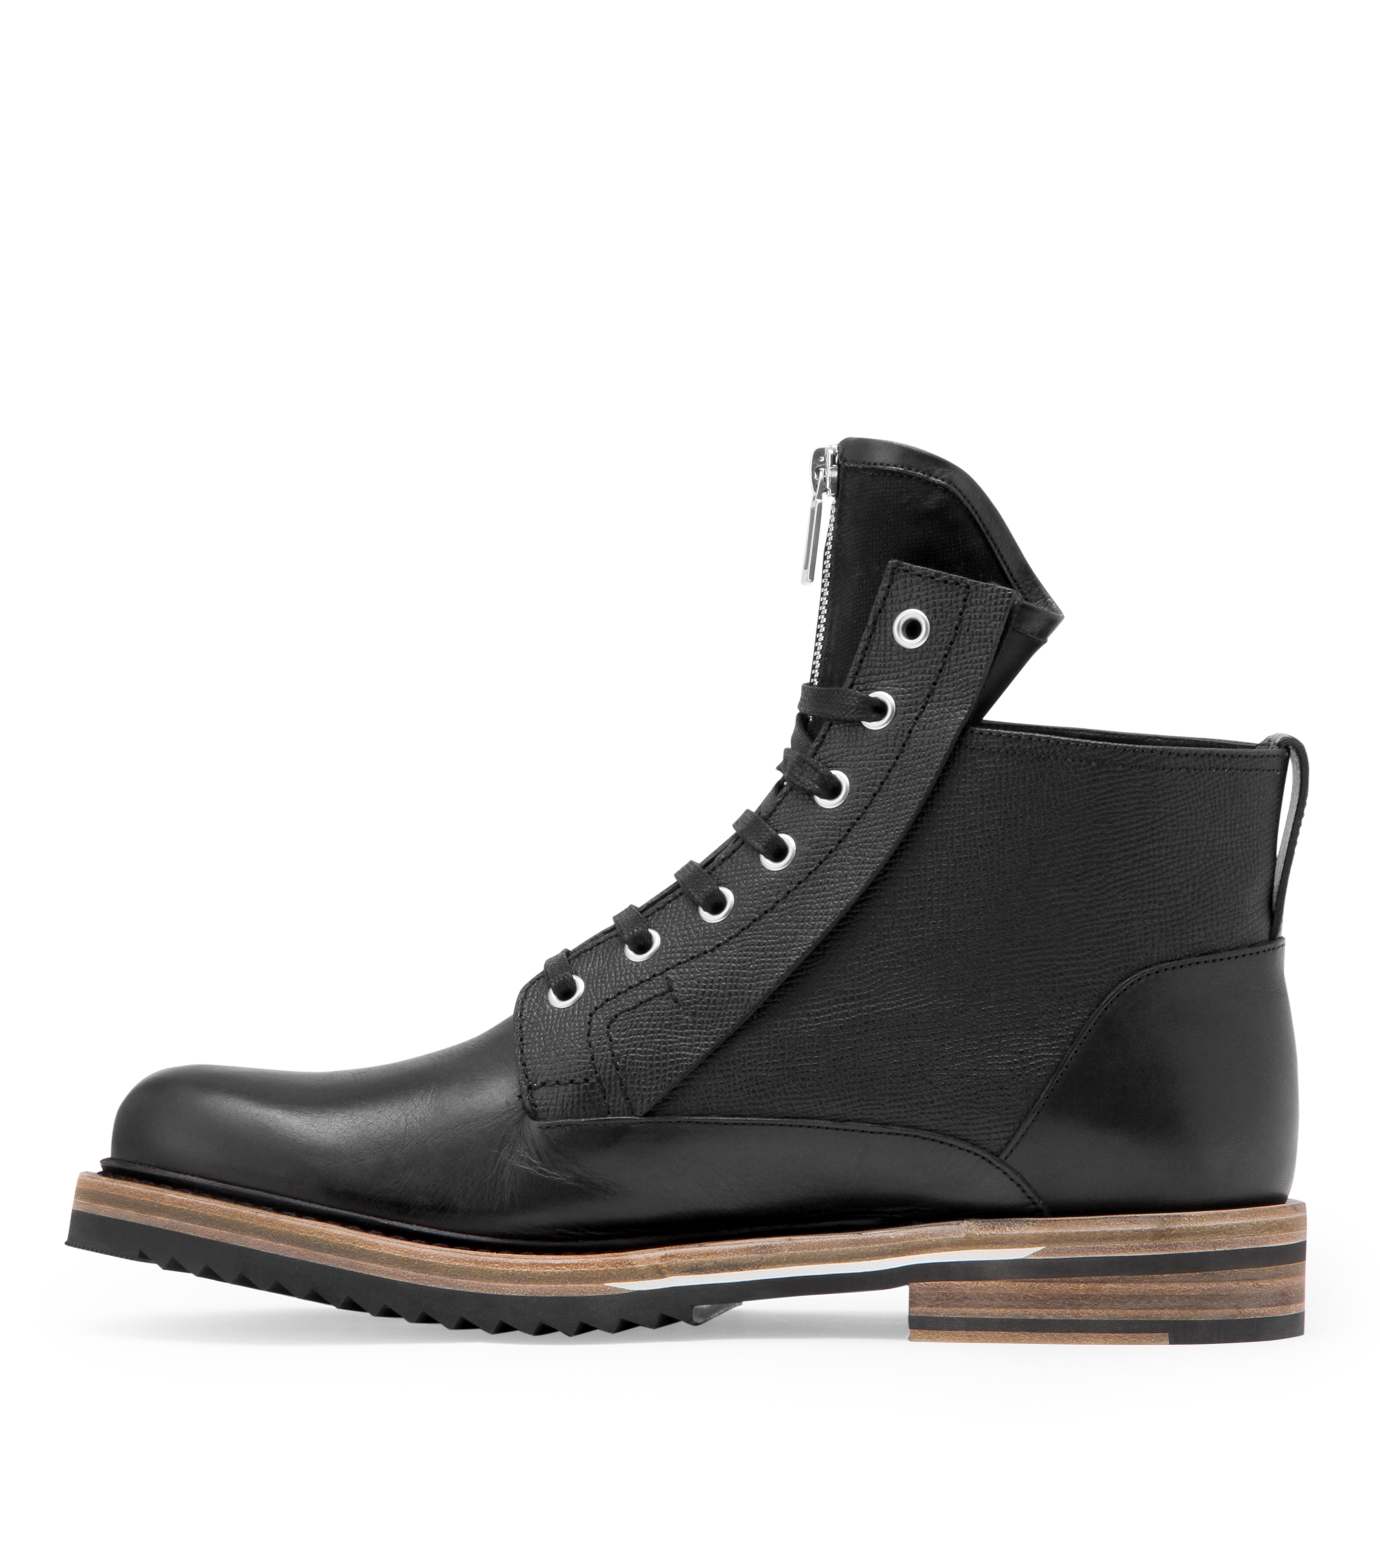 Cllection boots-13